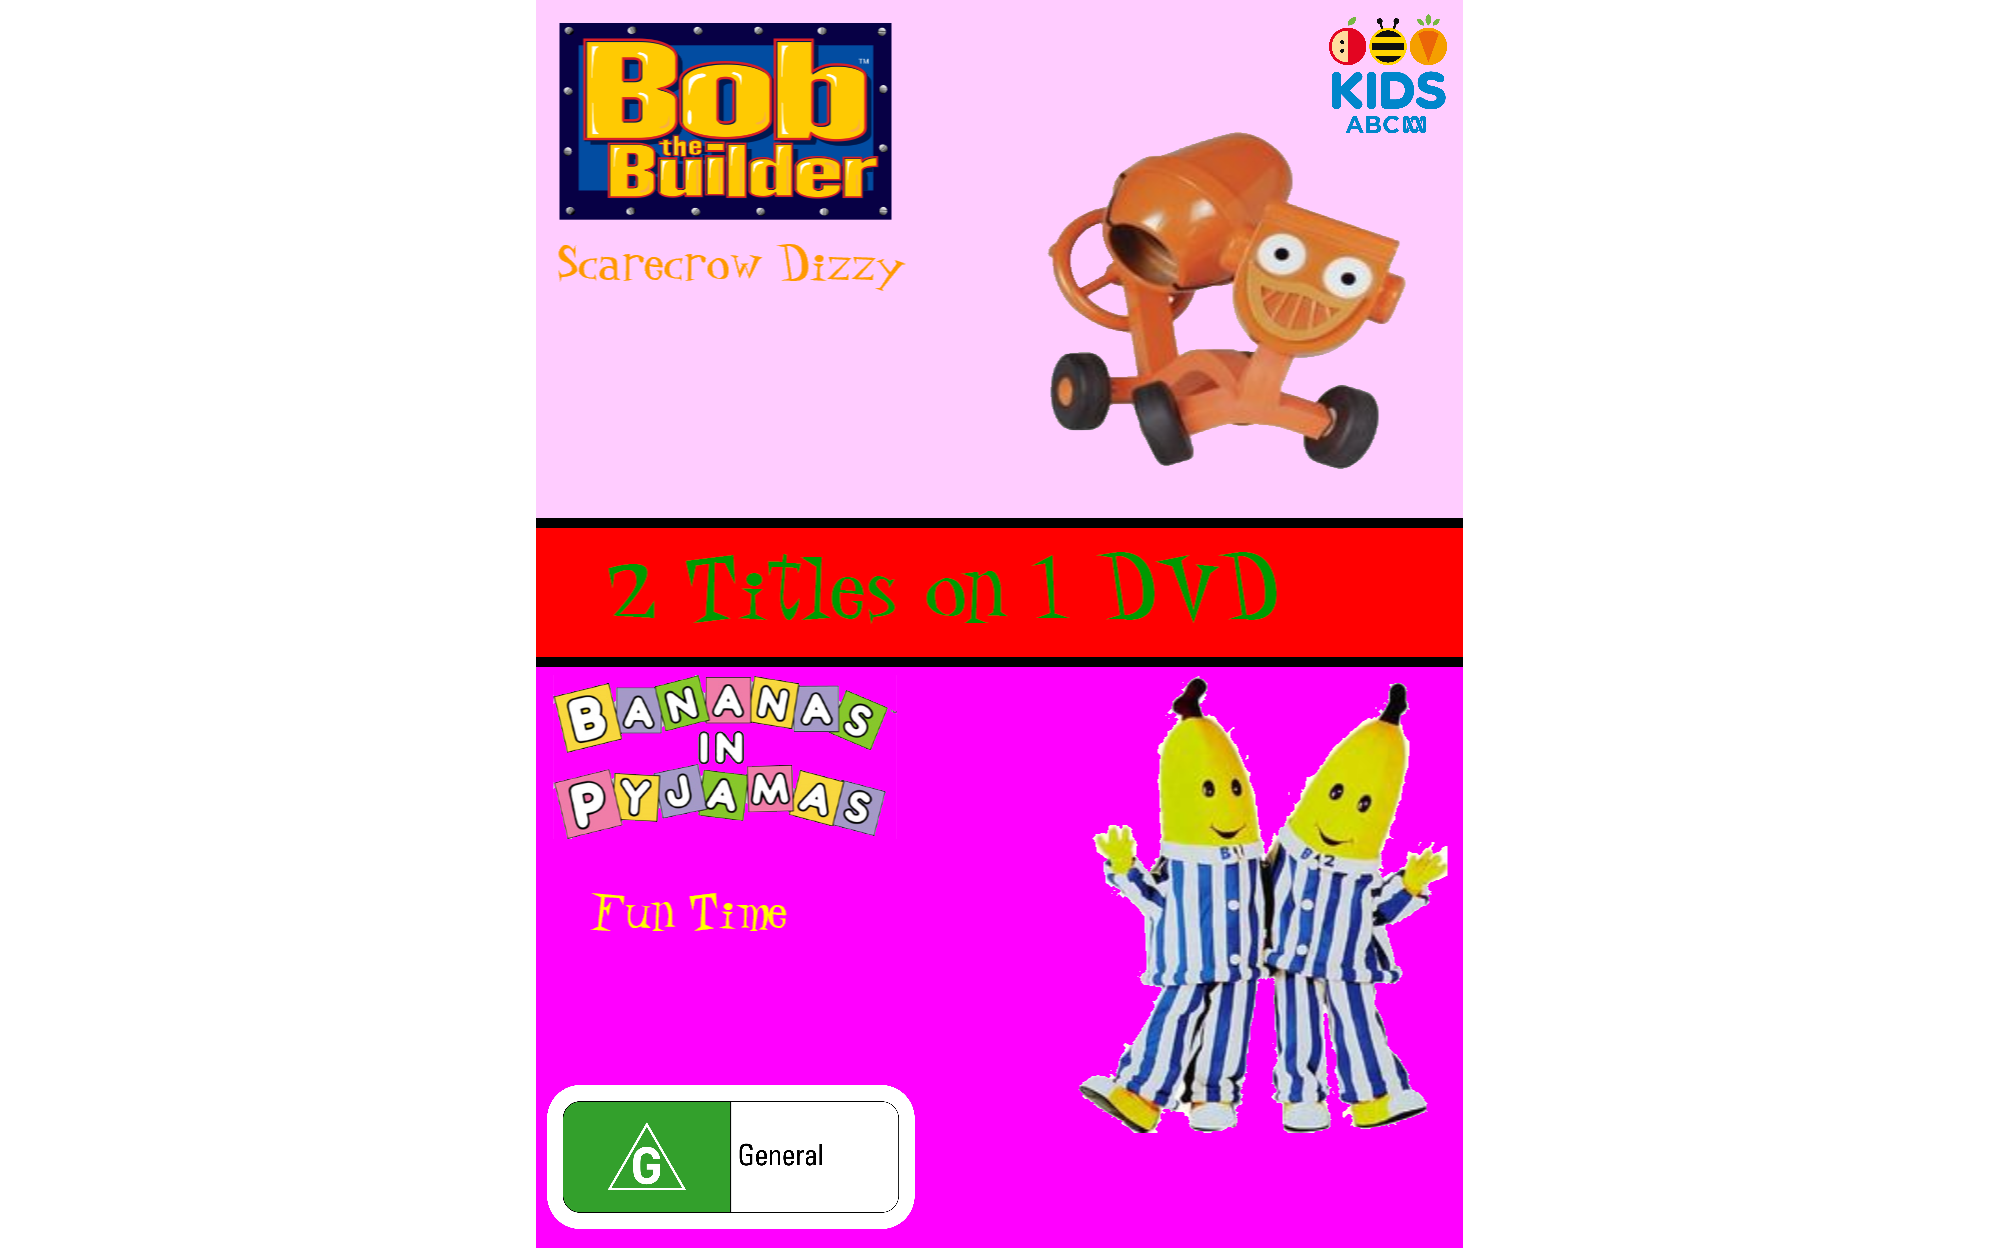 Bob the Builder and Bananas in Pyjamas: Scarecrow Dizzy and Fun Time